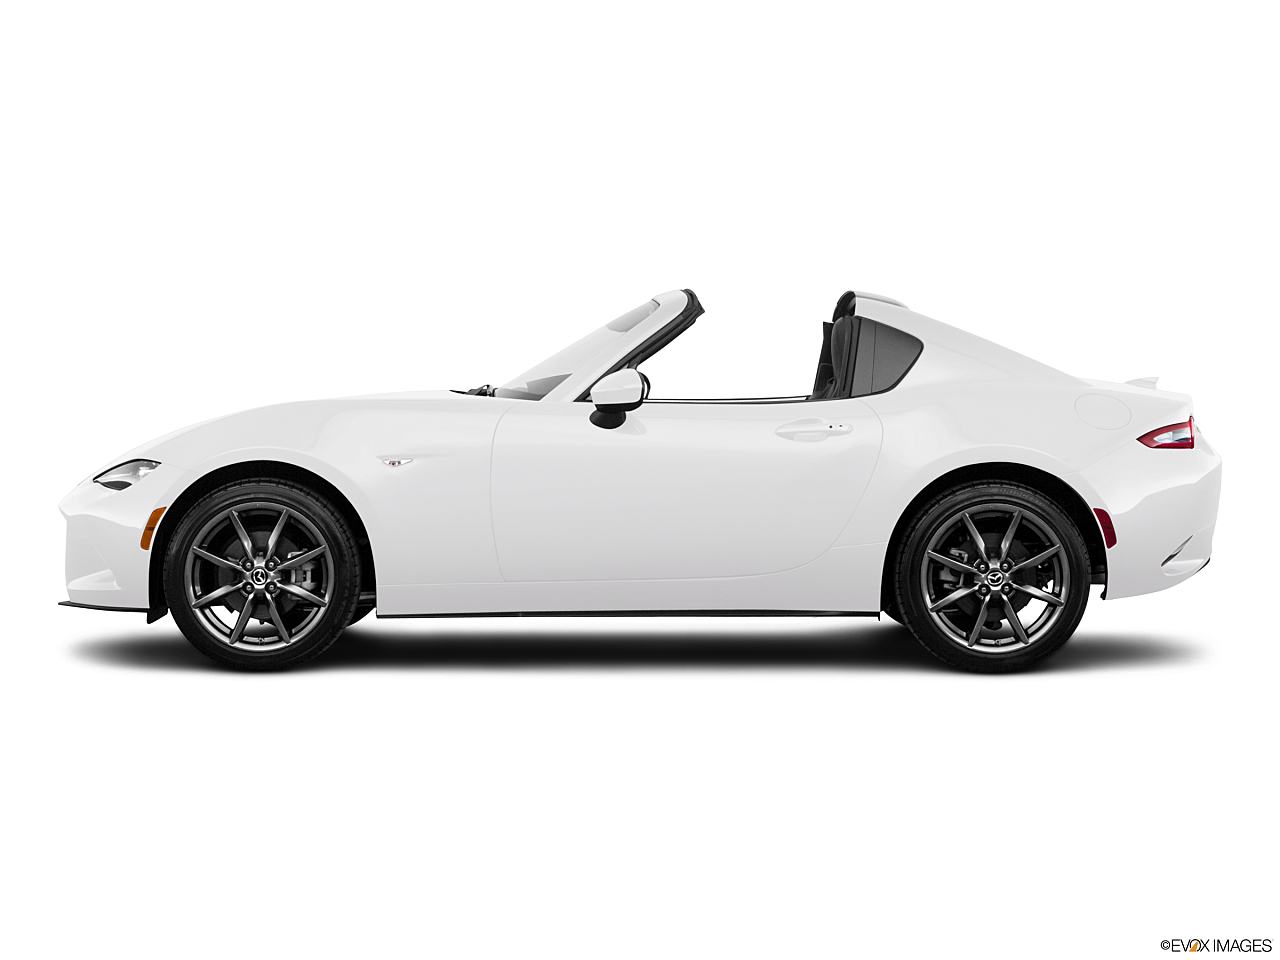 Image of 2019 Mazda MX-5 Miata RF Grand Touring